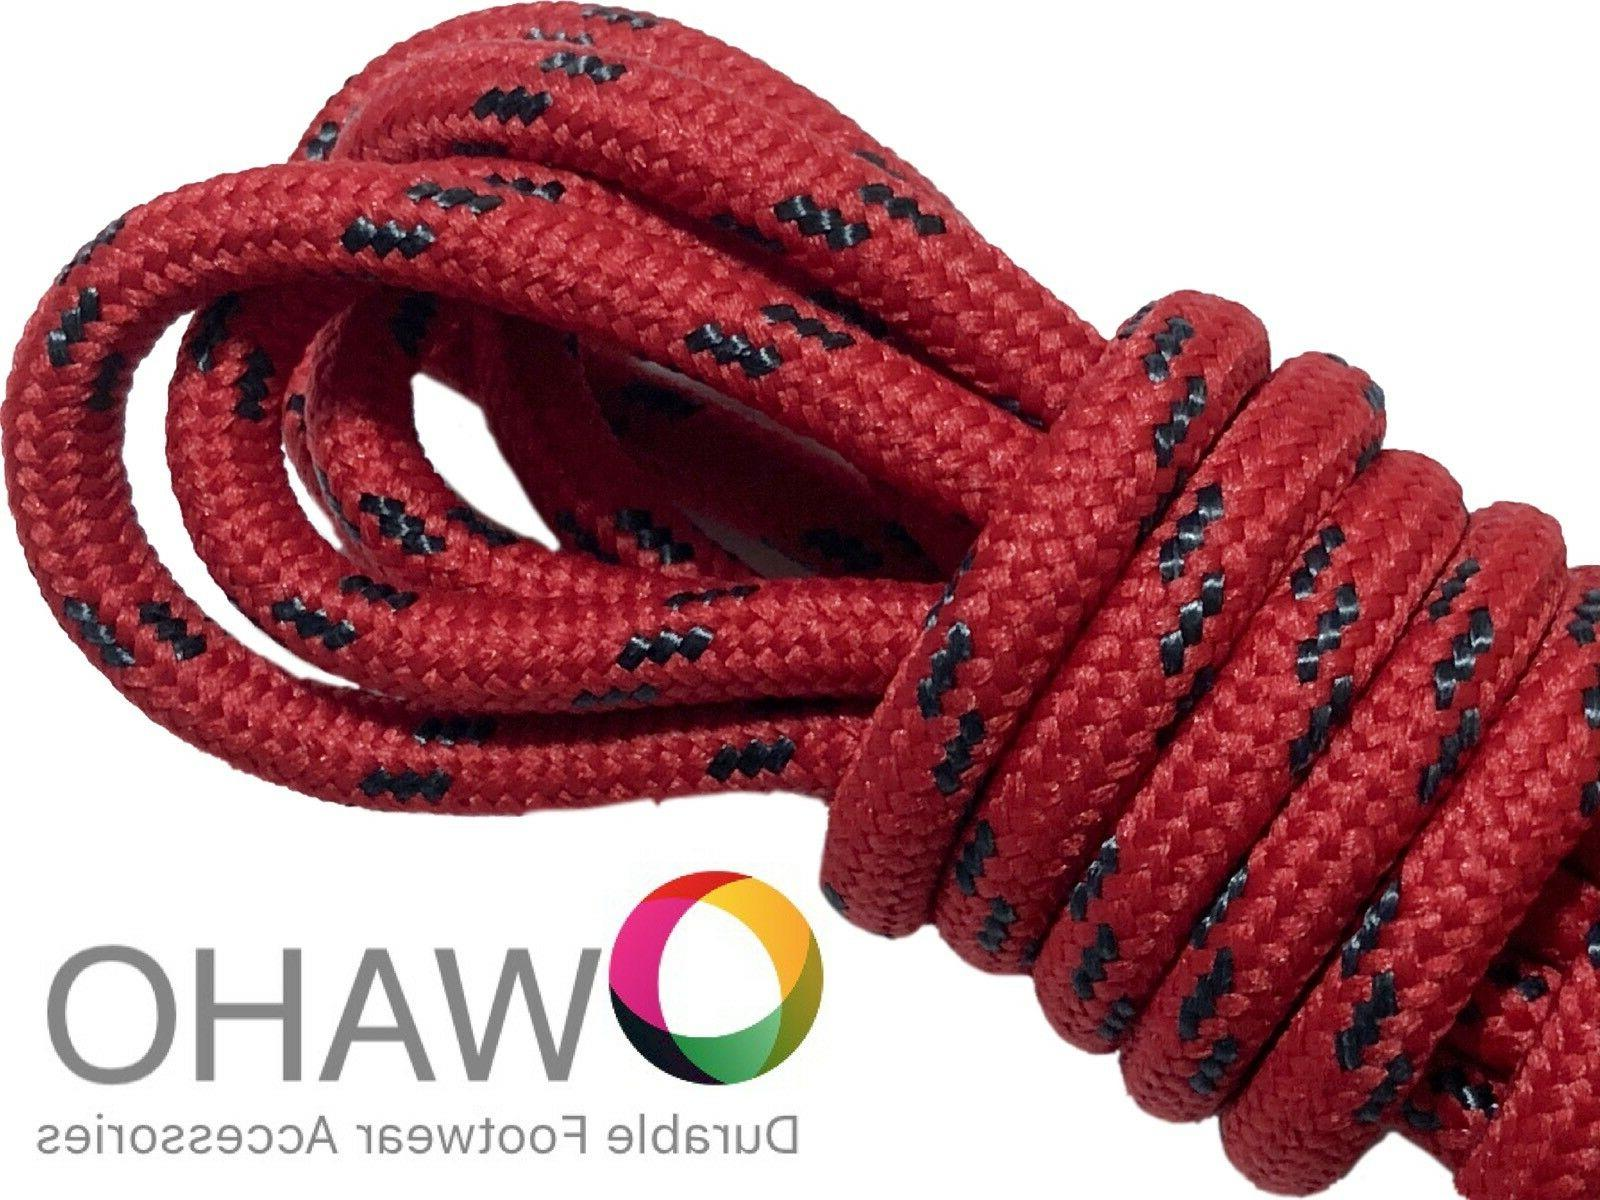 Heavy Duty Red Shoe / Boot Laces made with Black Dupont™ K